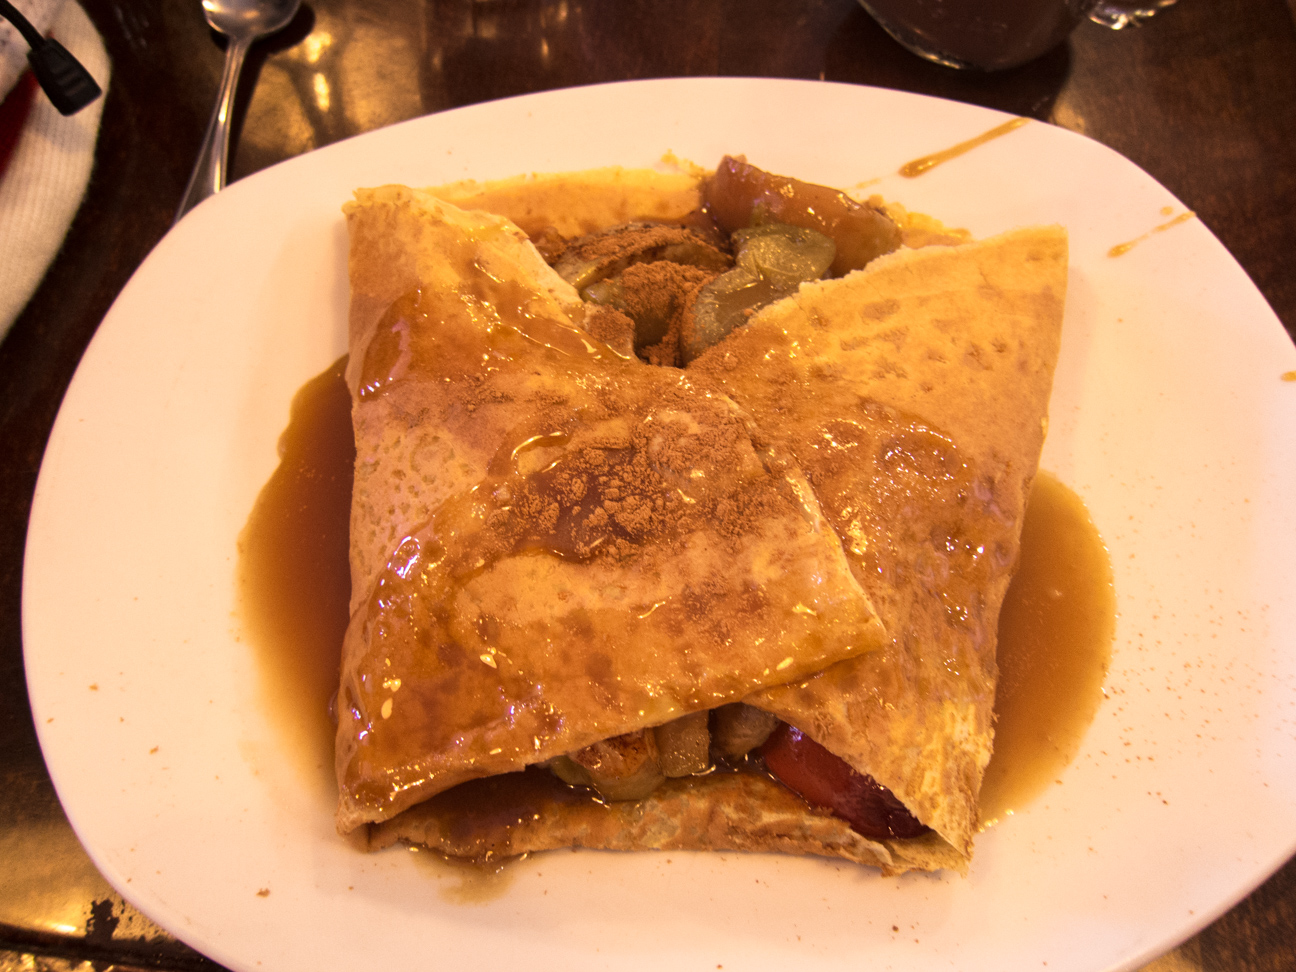 crepe filled with poached apples and cinnamon with maple cream